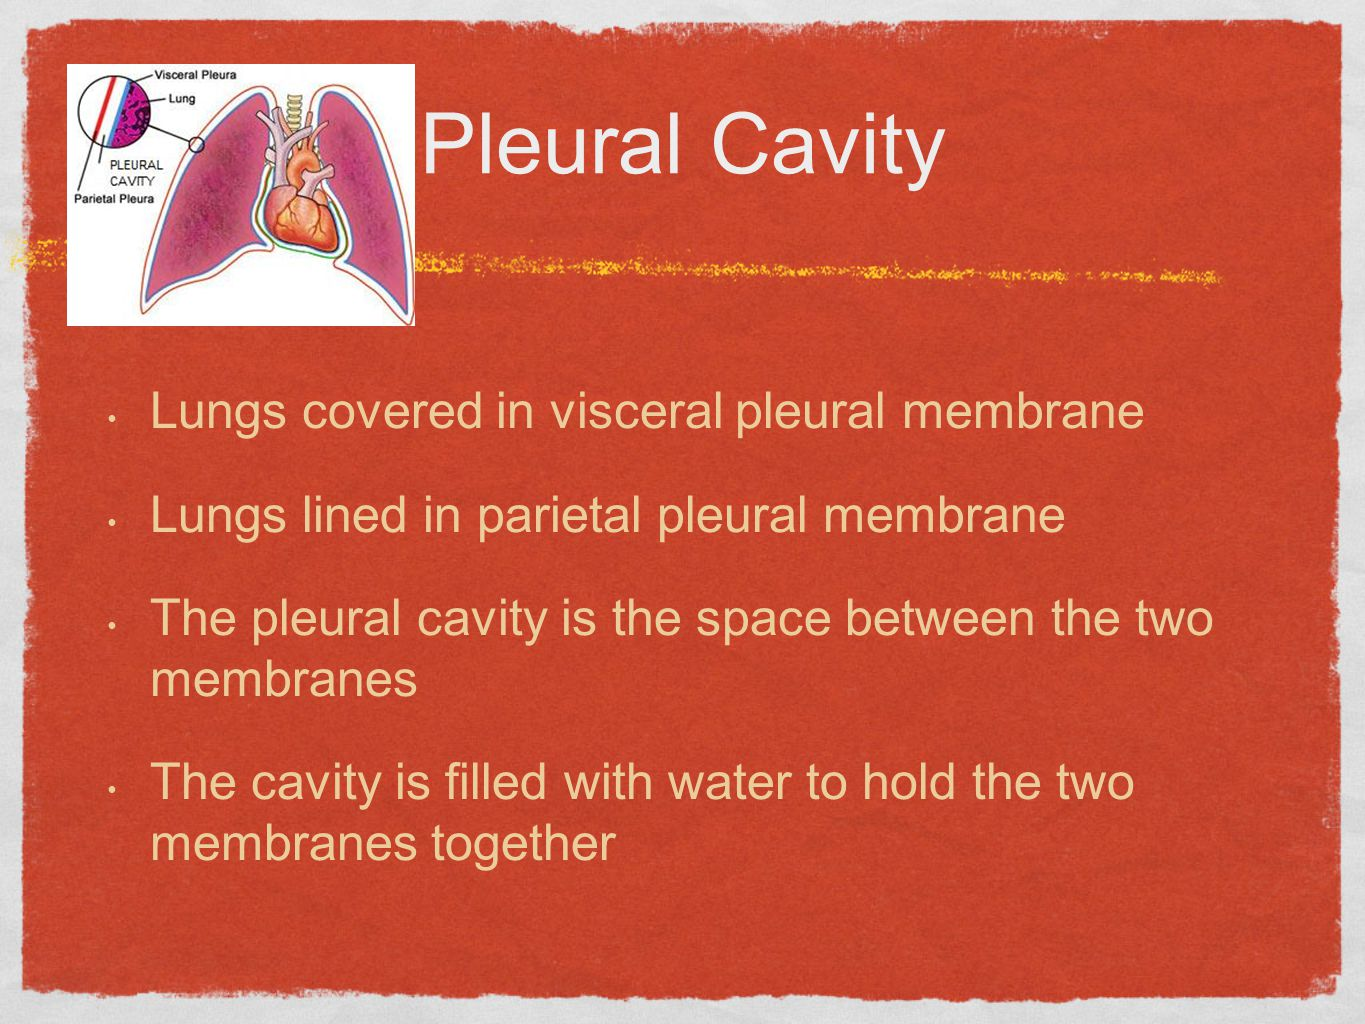 Pleural Cavity Lungs covered in visceral pleural membrane